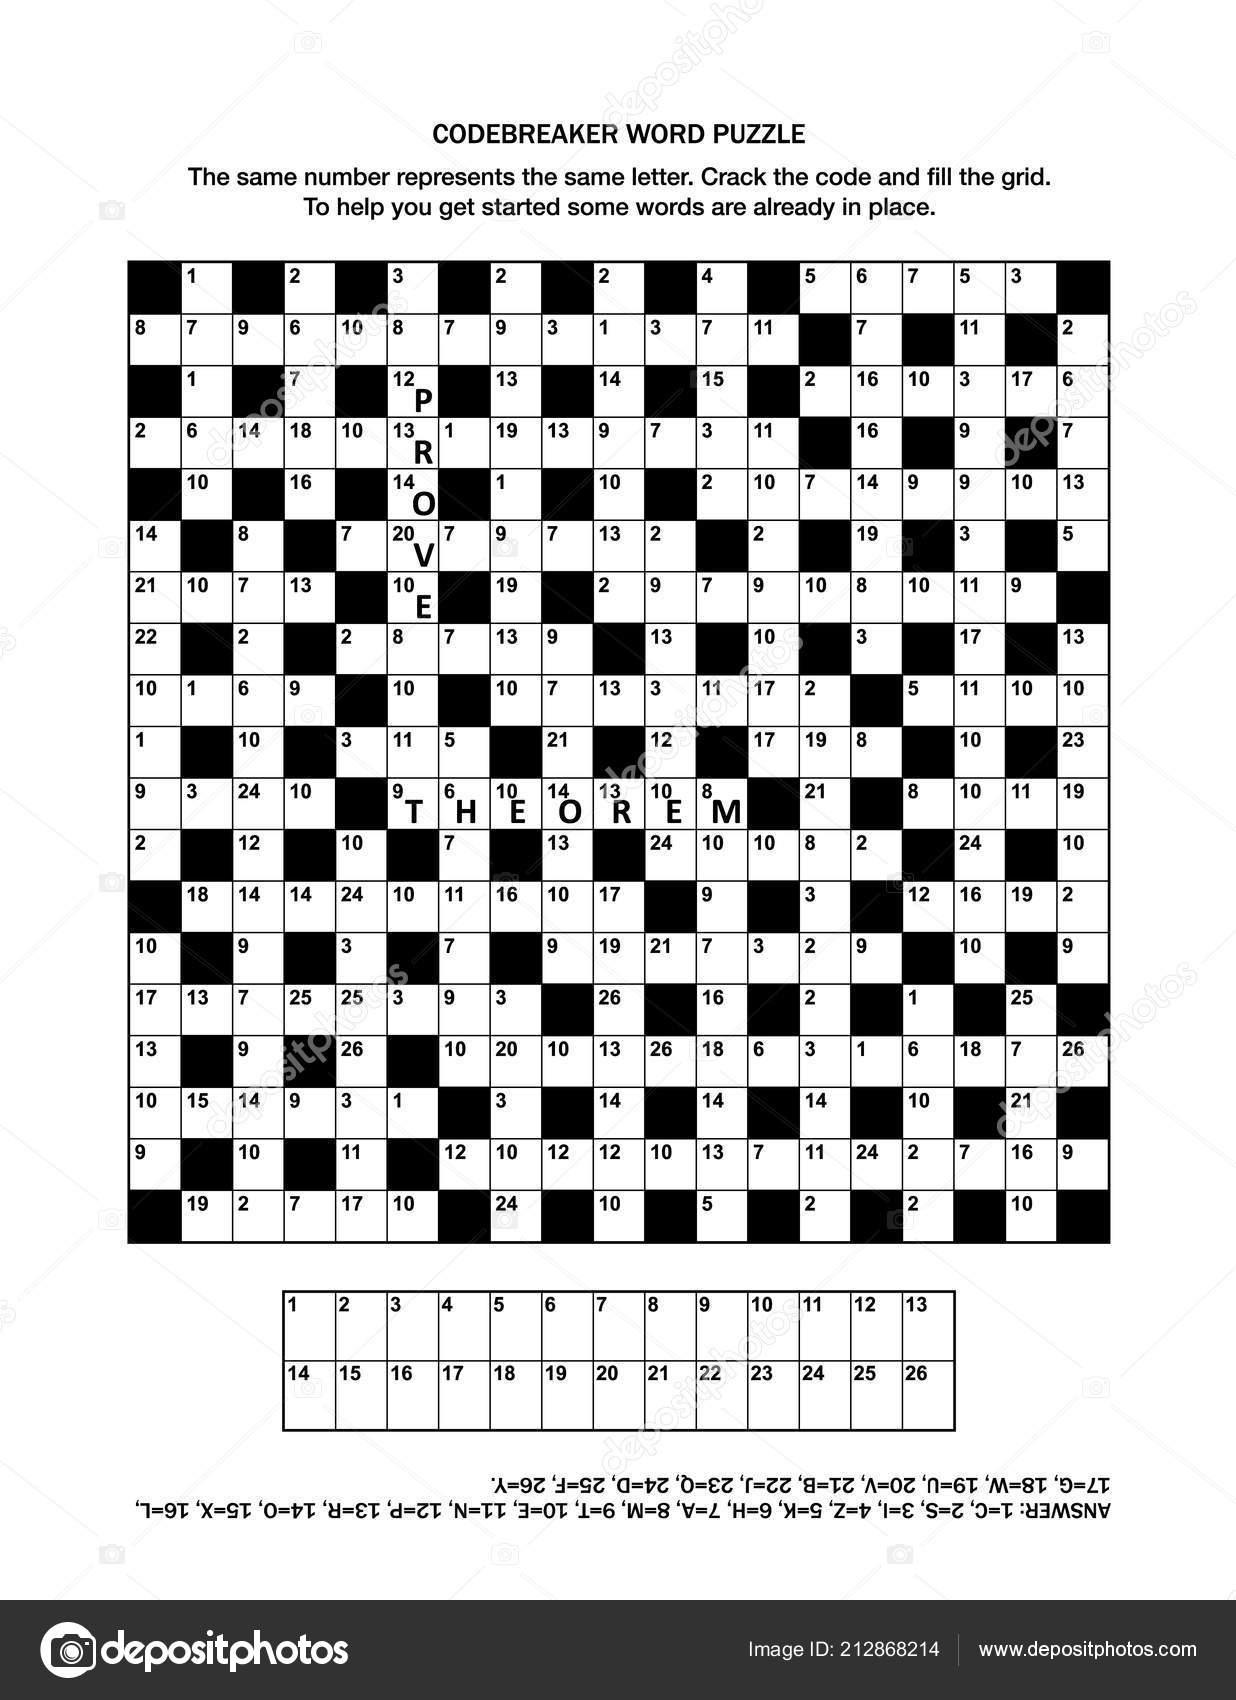 Puzzle Page Codebreaker Codeword Code Cracker Word Game Crossword - Printable Codebreaker Puzzles